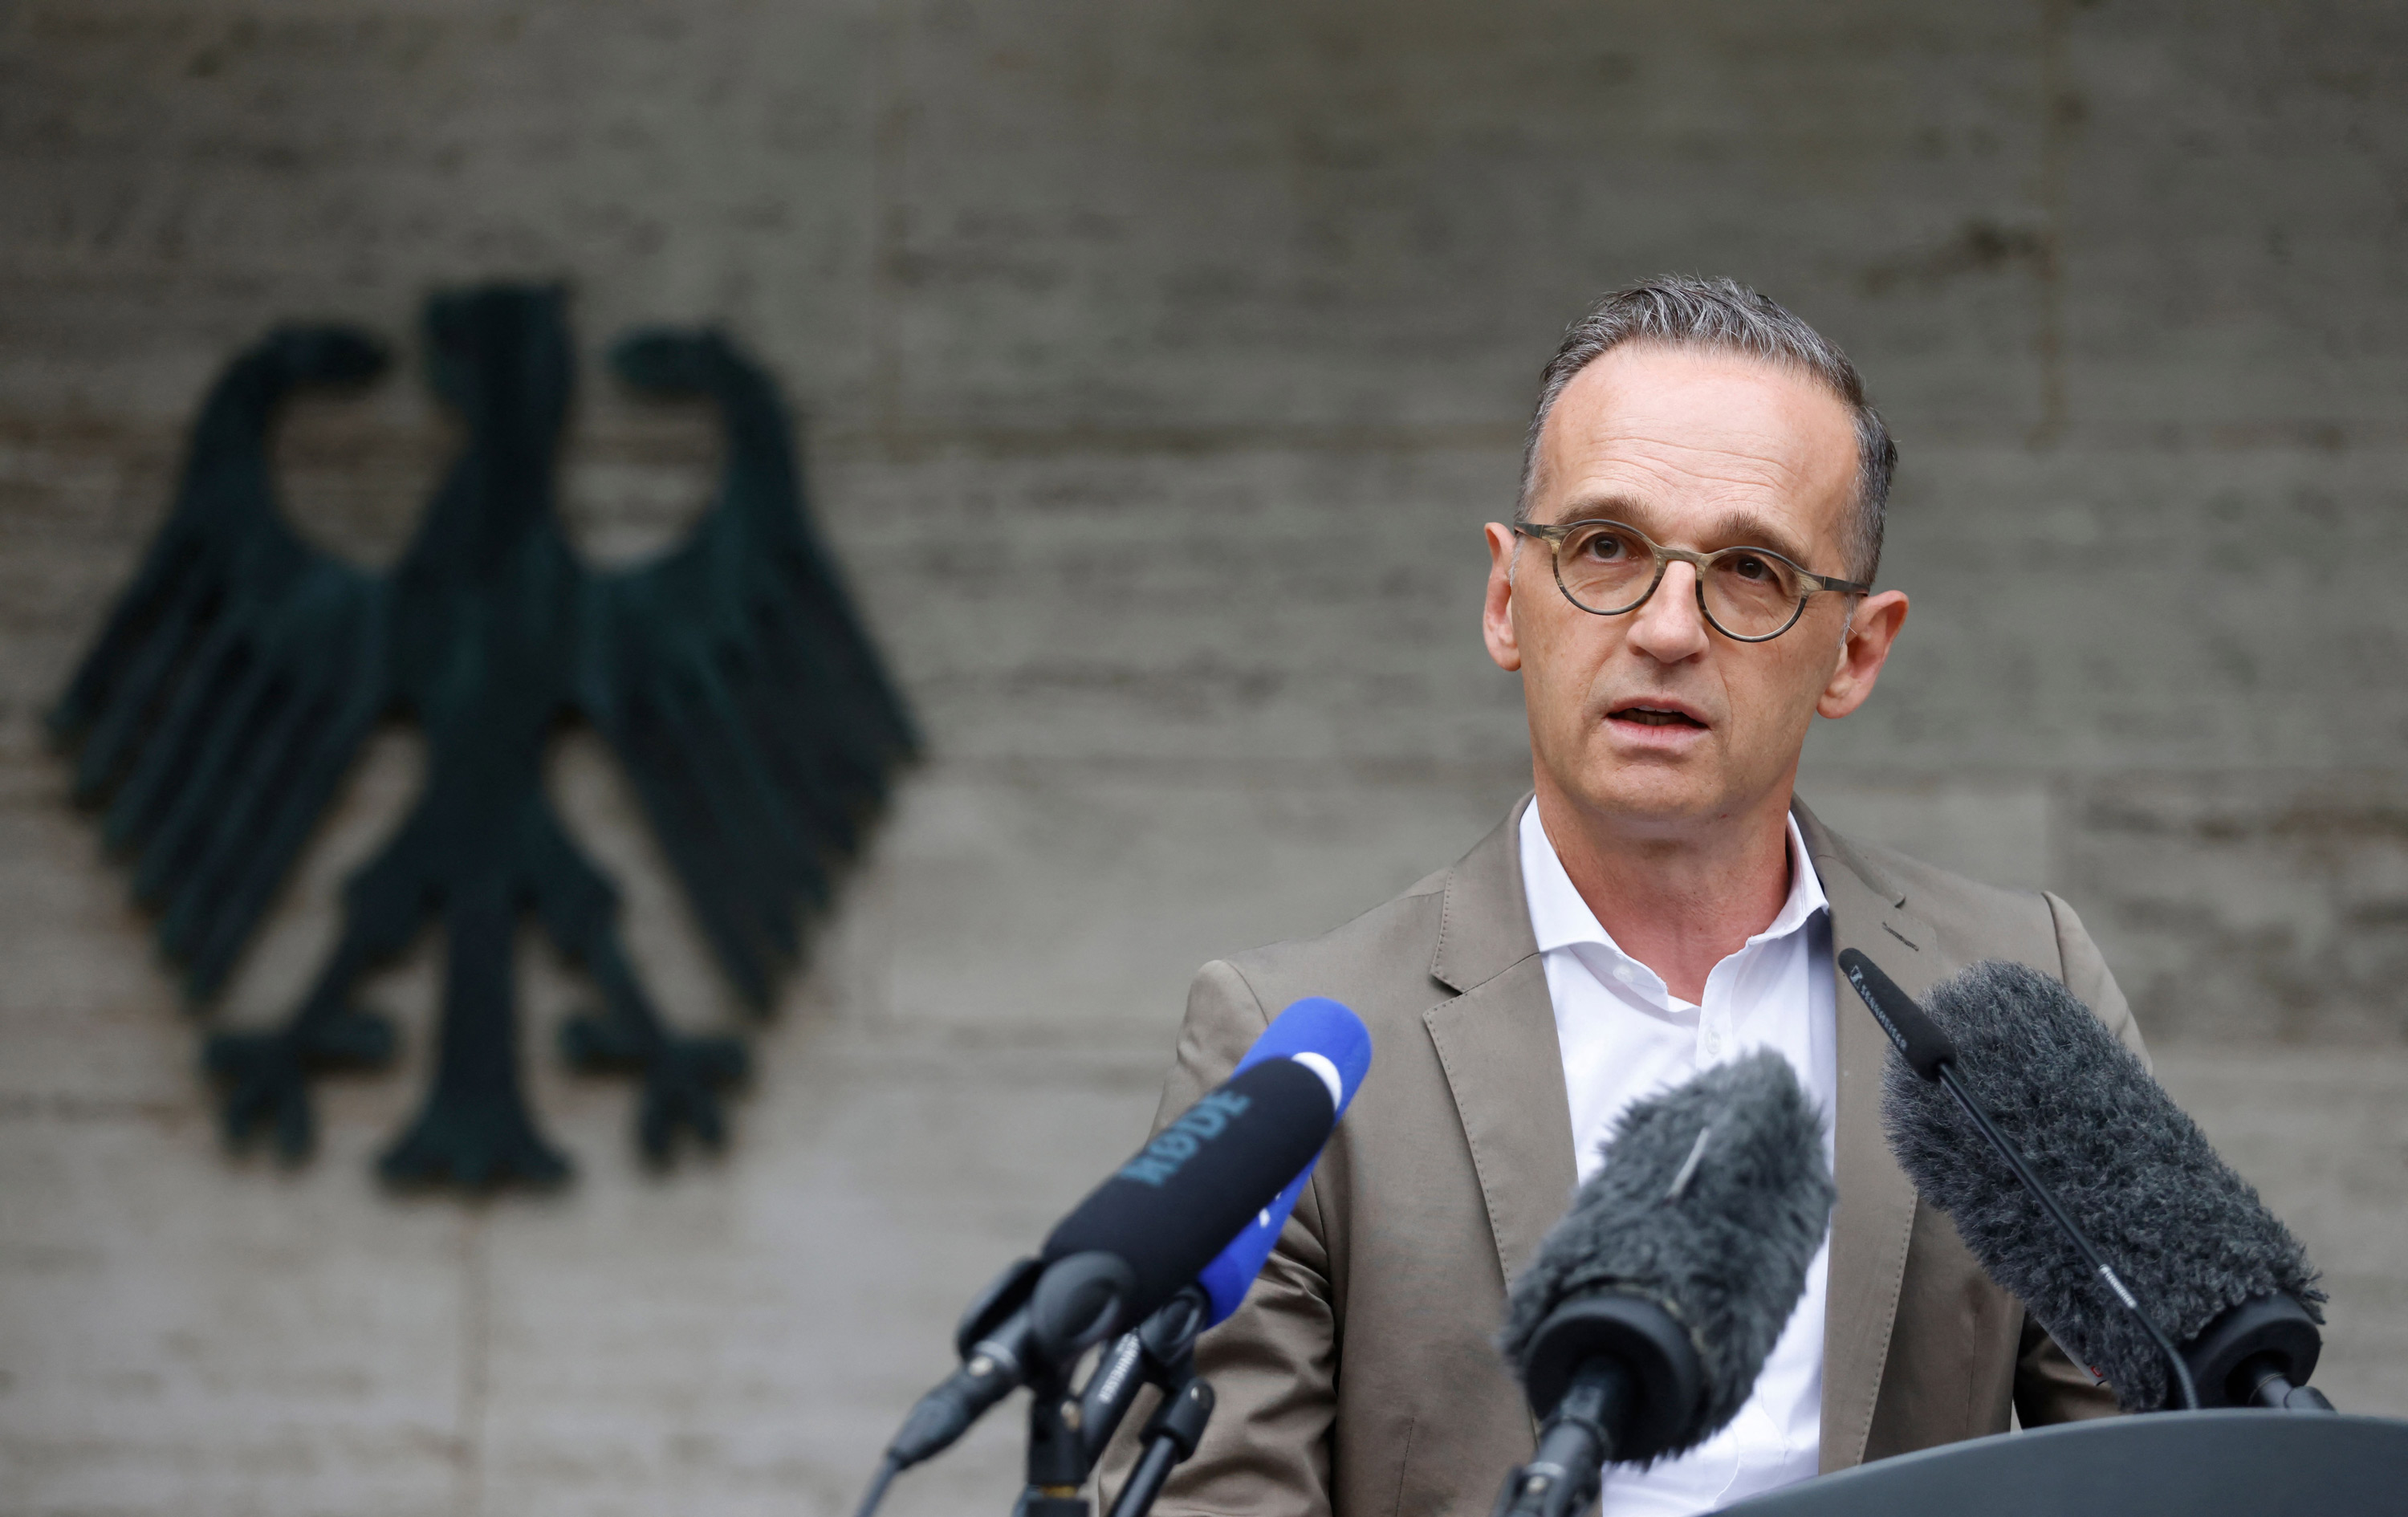 German Foreign Minister Heiko Maas gives a press statement at the Foreign Ministry in Berlin on August 16.